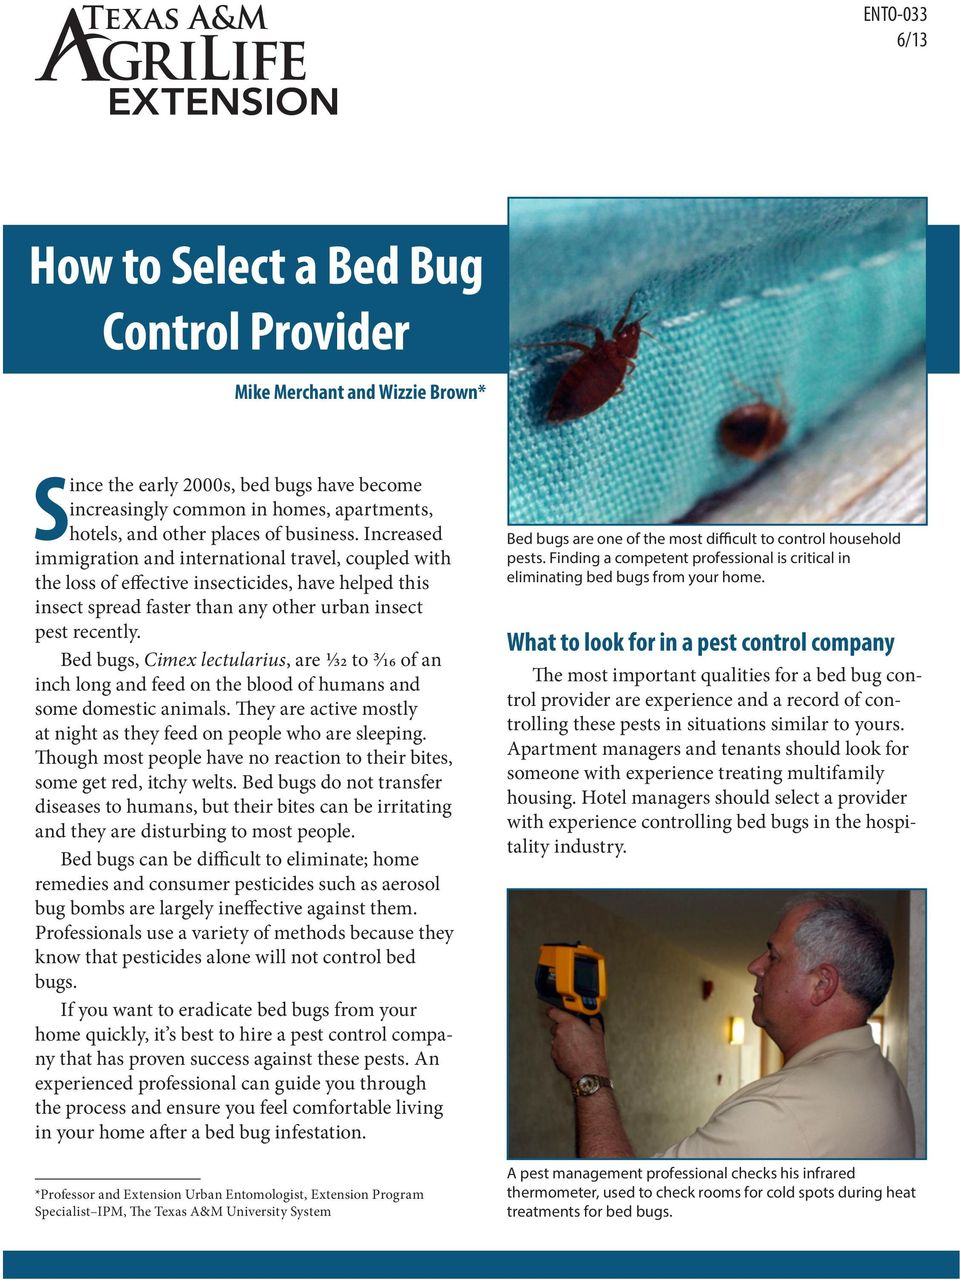 Bed bugs, Cimex lectularius, are 1/32 to 3/16 of an inch long and feed on the blood of humans and some domestic animals. They are active mostly at night as they feed on people who are sleeping.